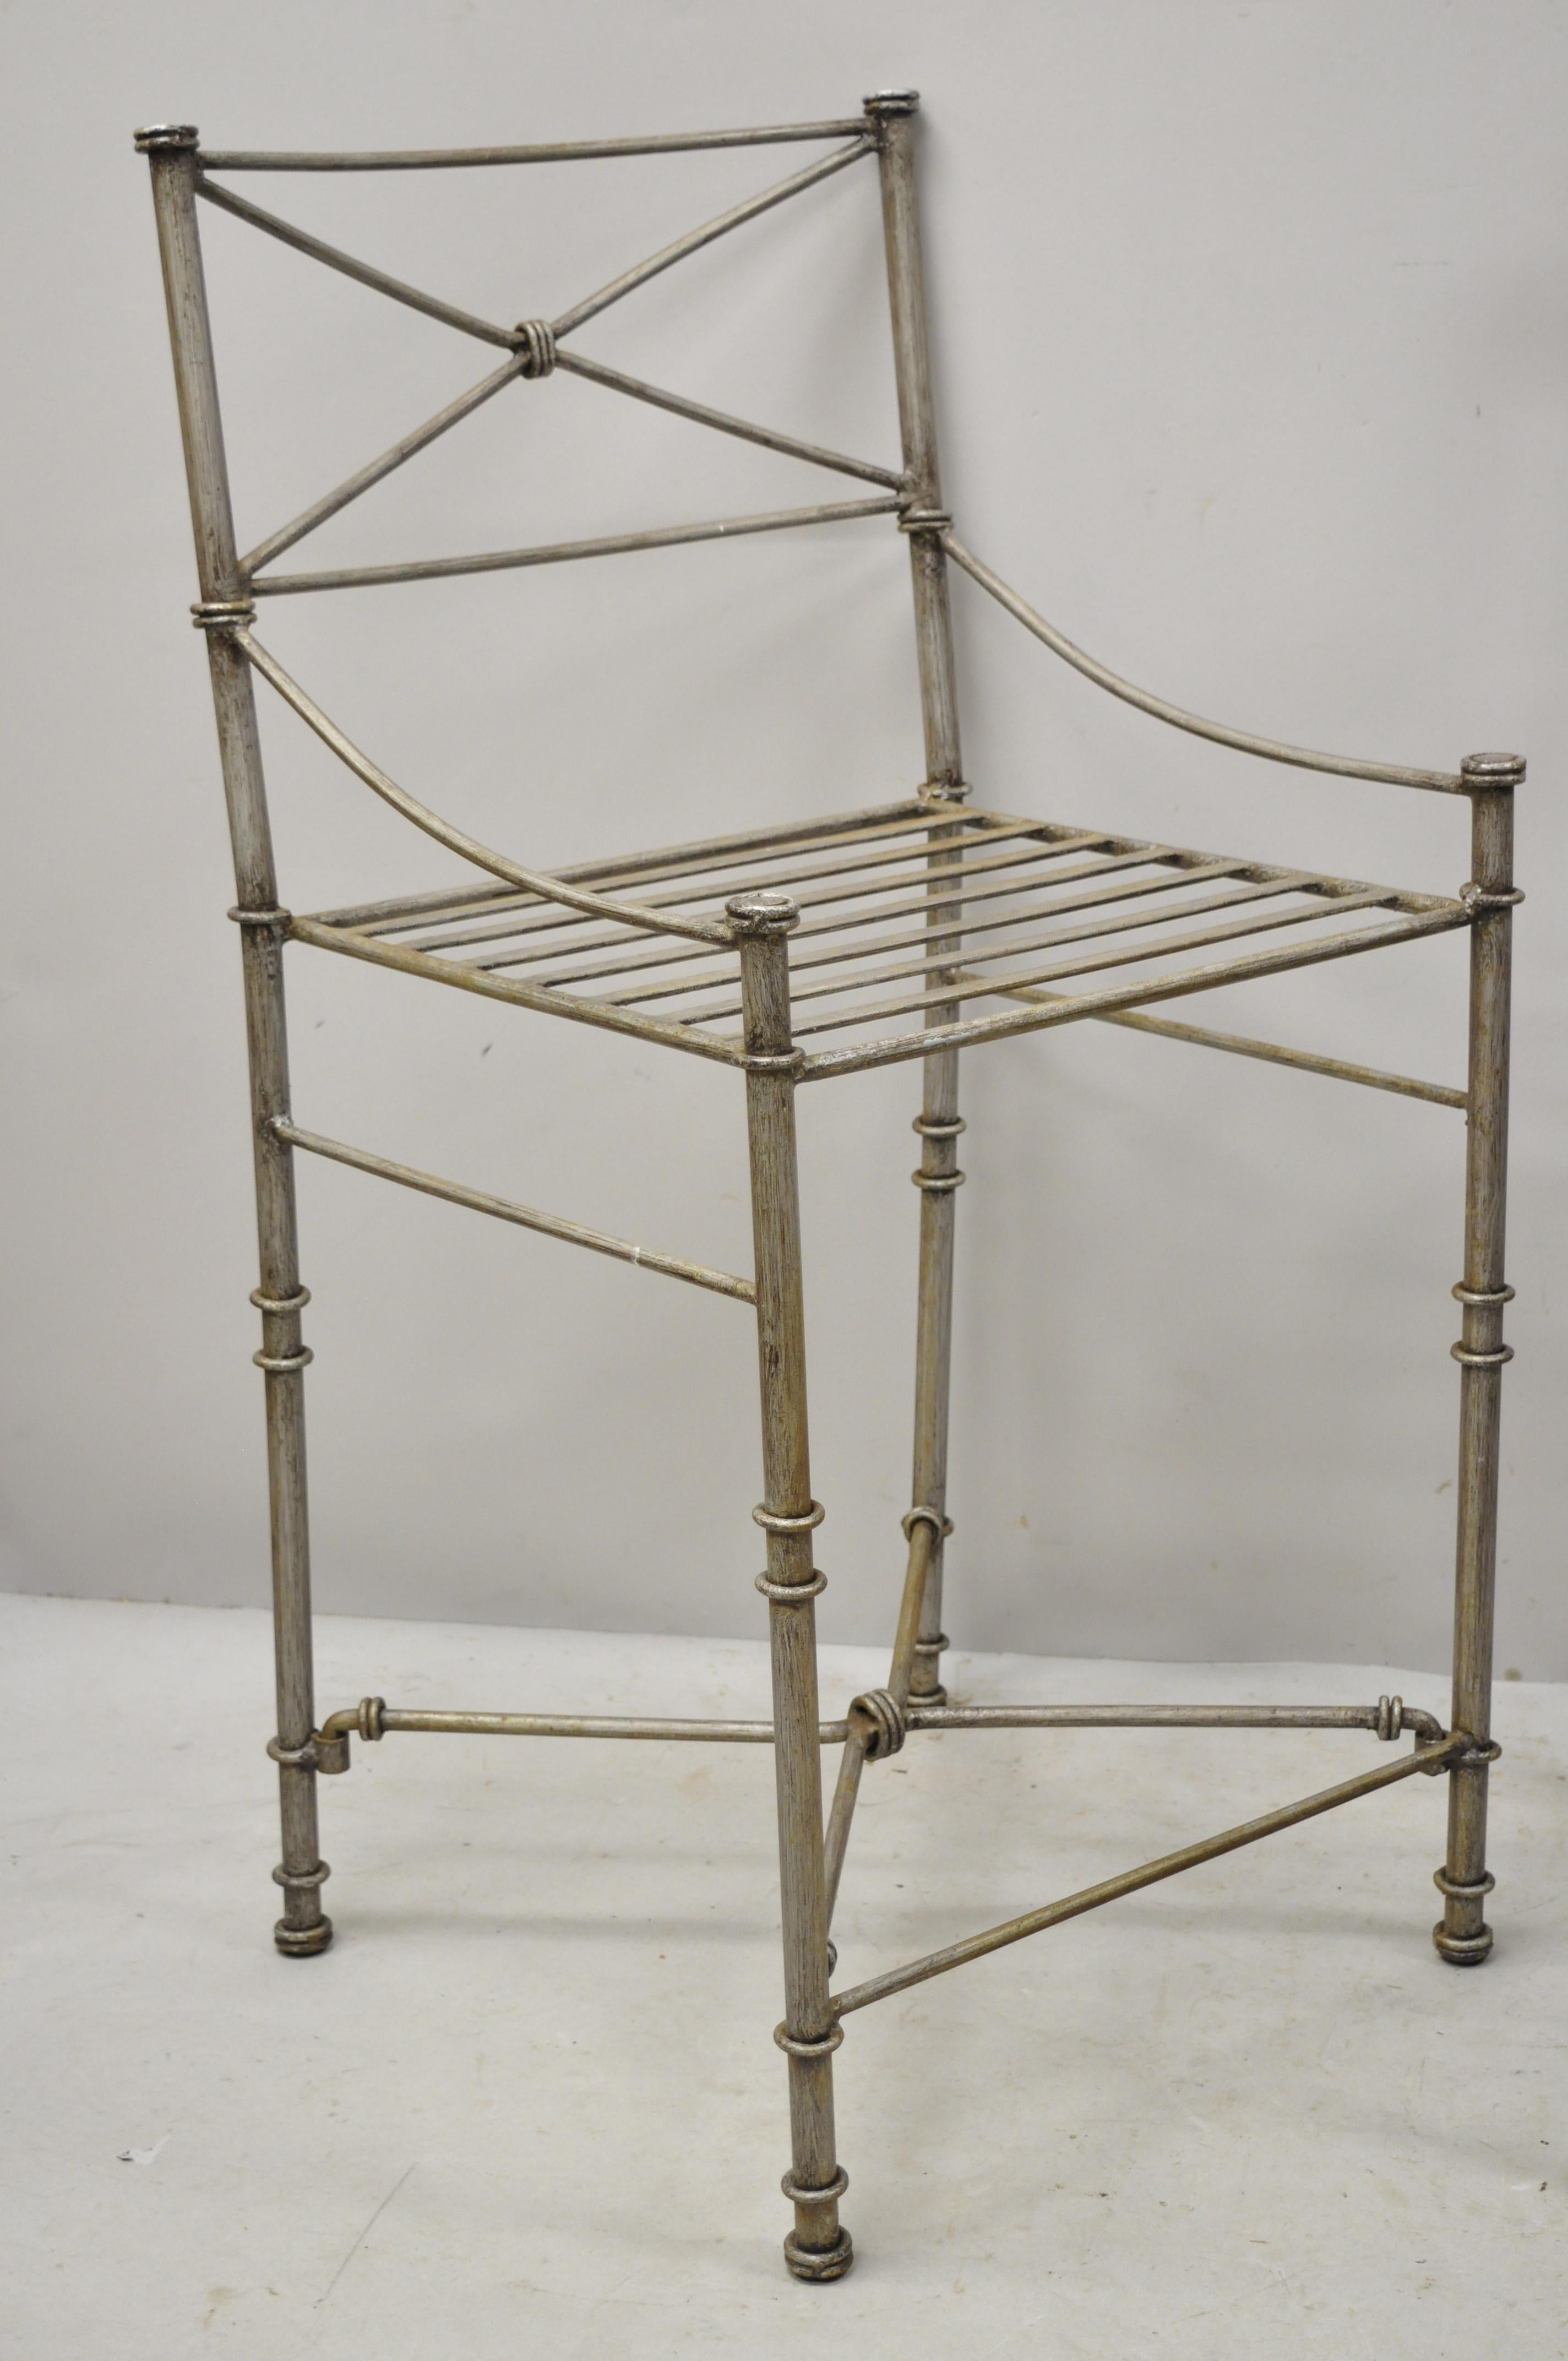 Late 20th Century Pier 1 Medici Pewter Wrought Iron Counter Bar Stools Set Of 3 At 1stdibs